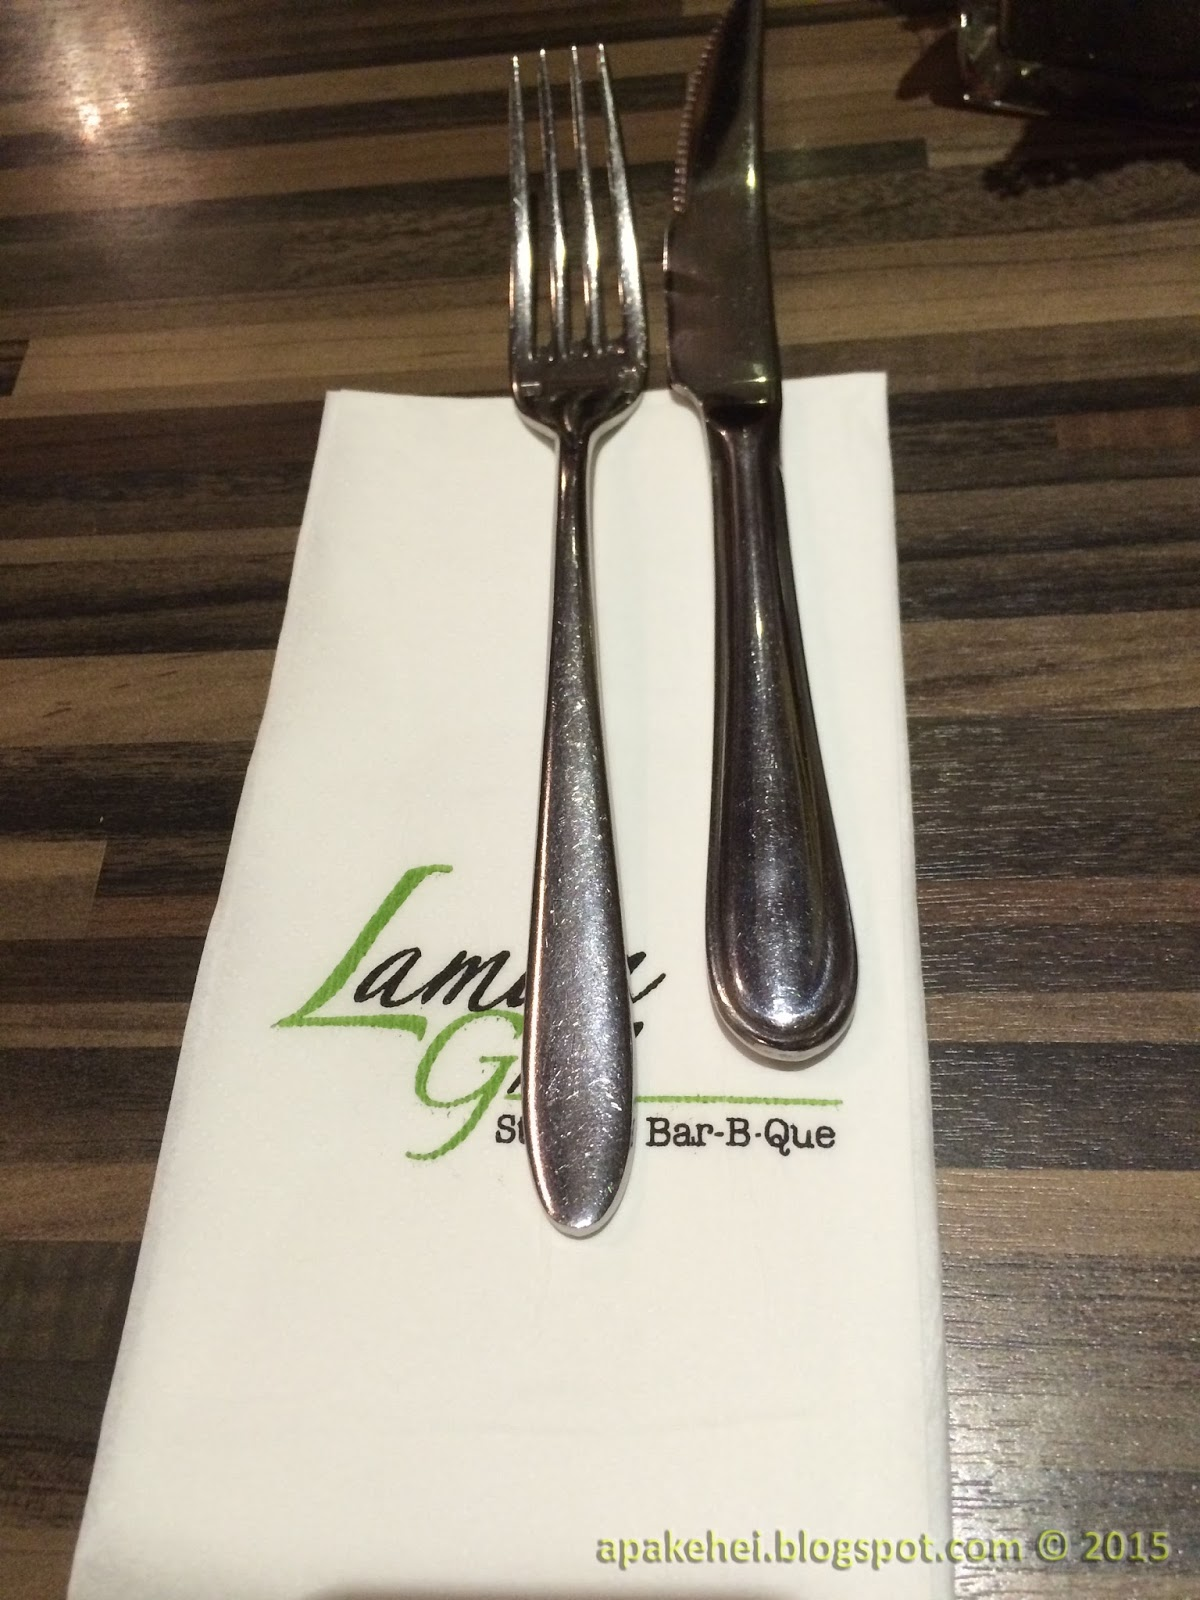 Laman Grill Steak and Bar-B-Que